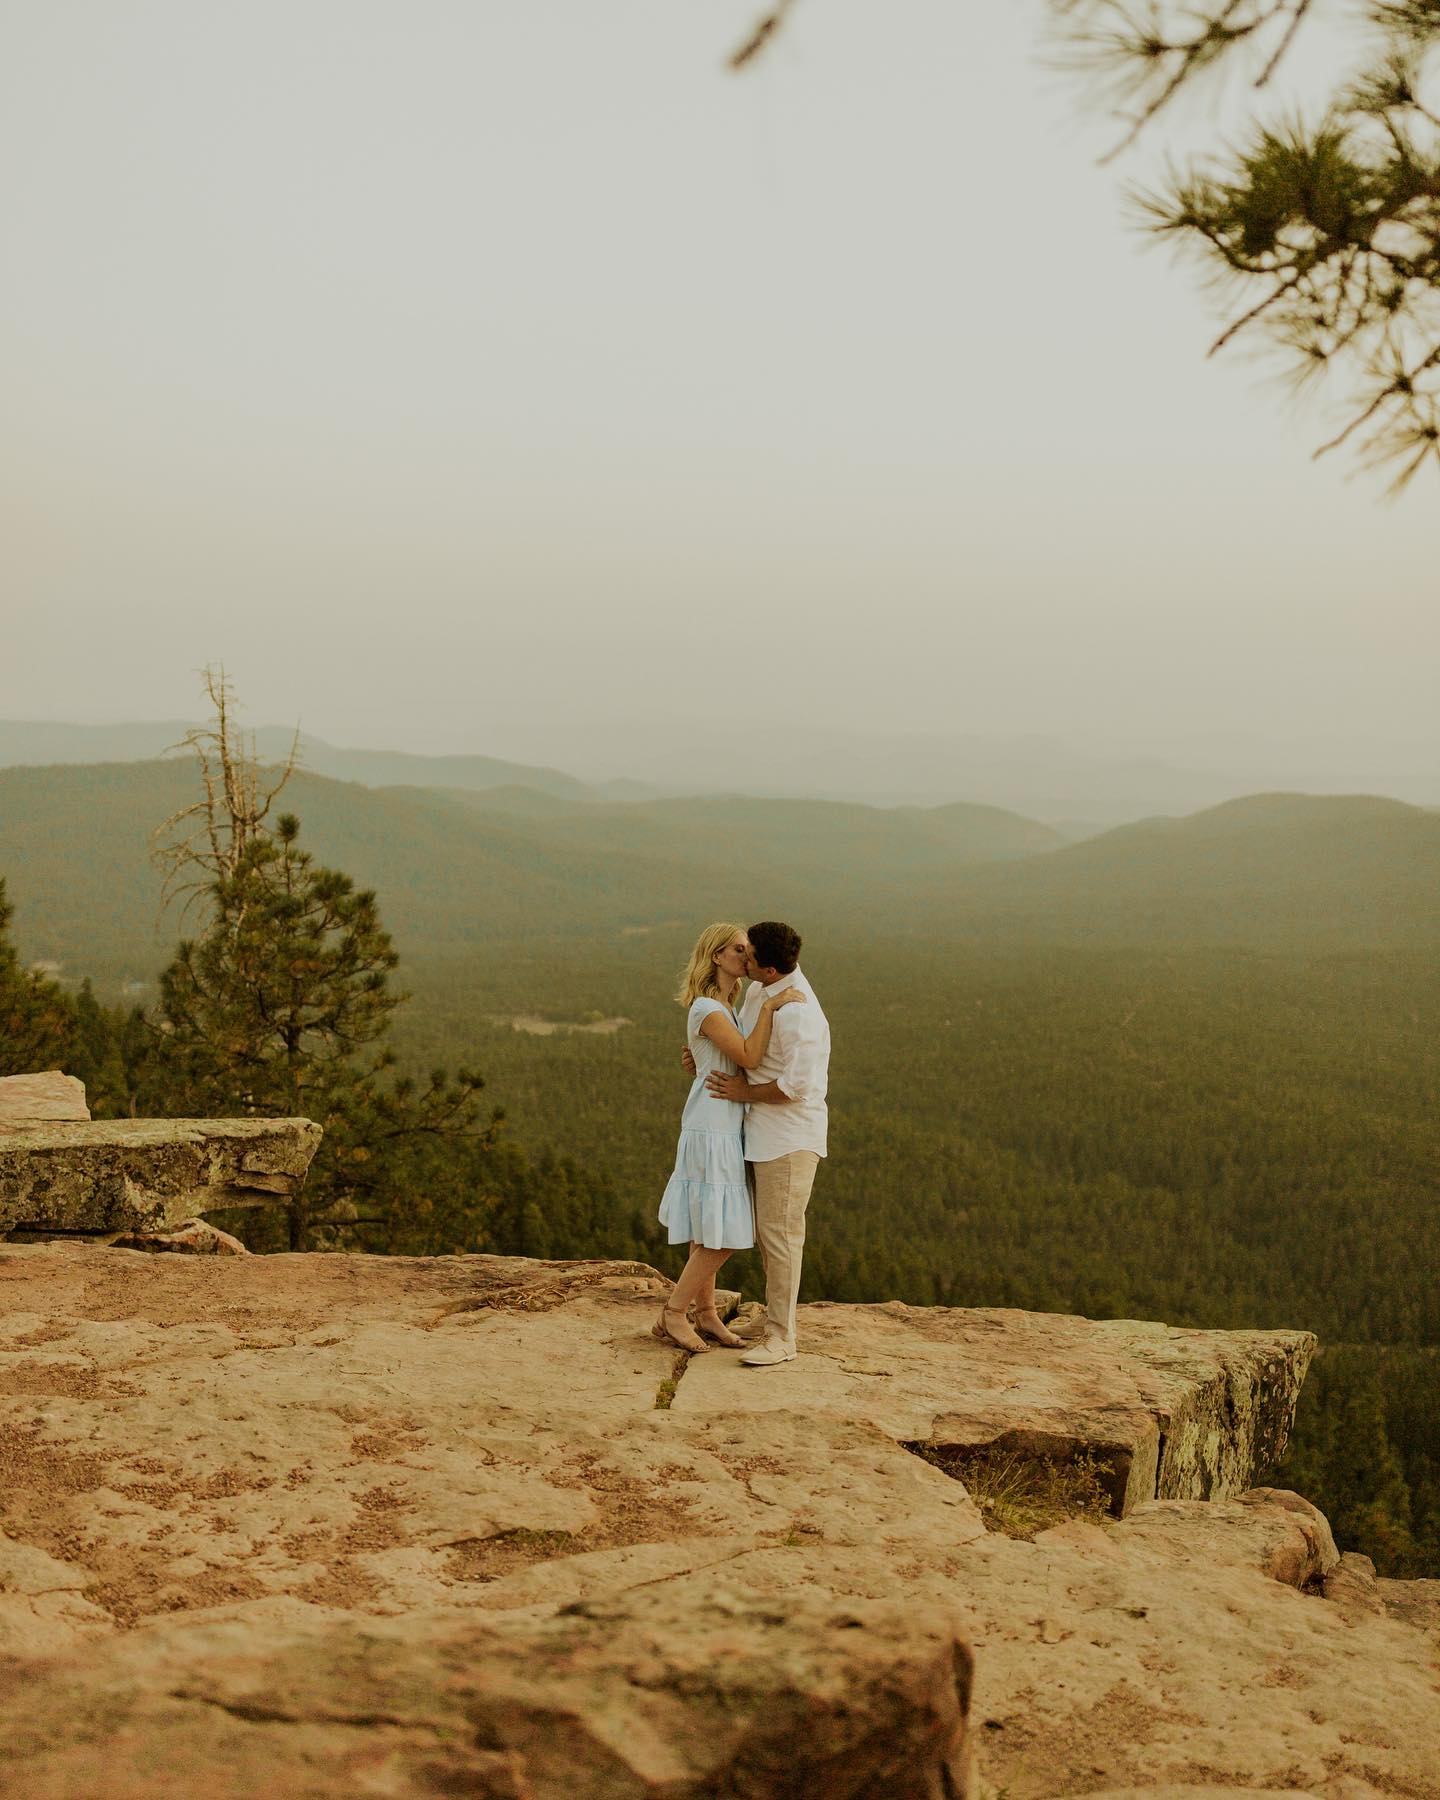 Arizona couples/engagement photographer